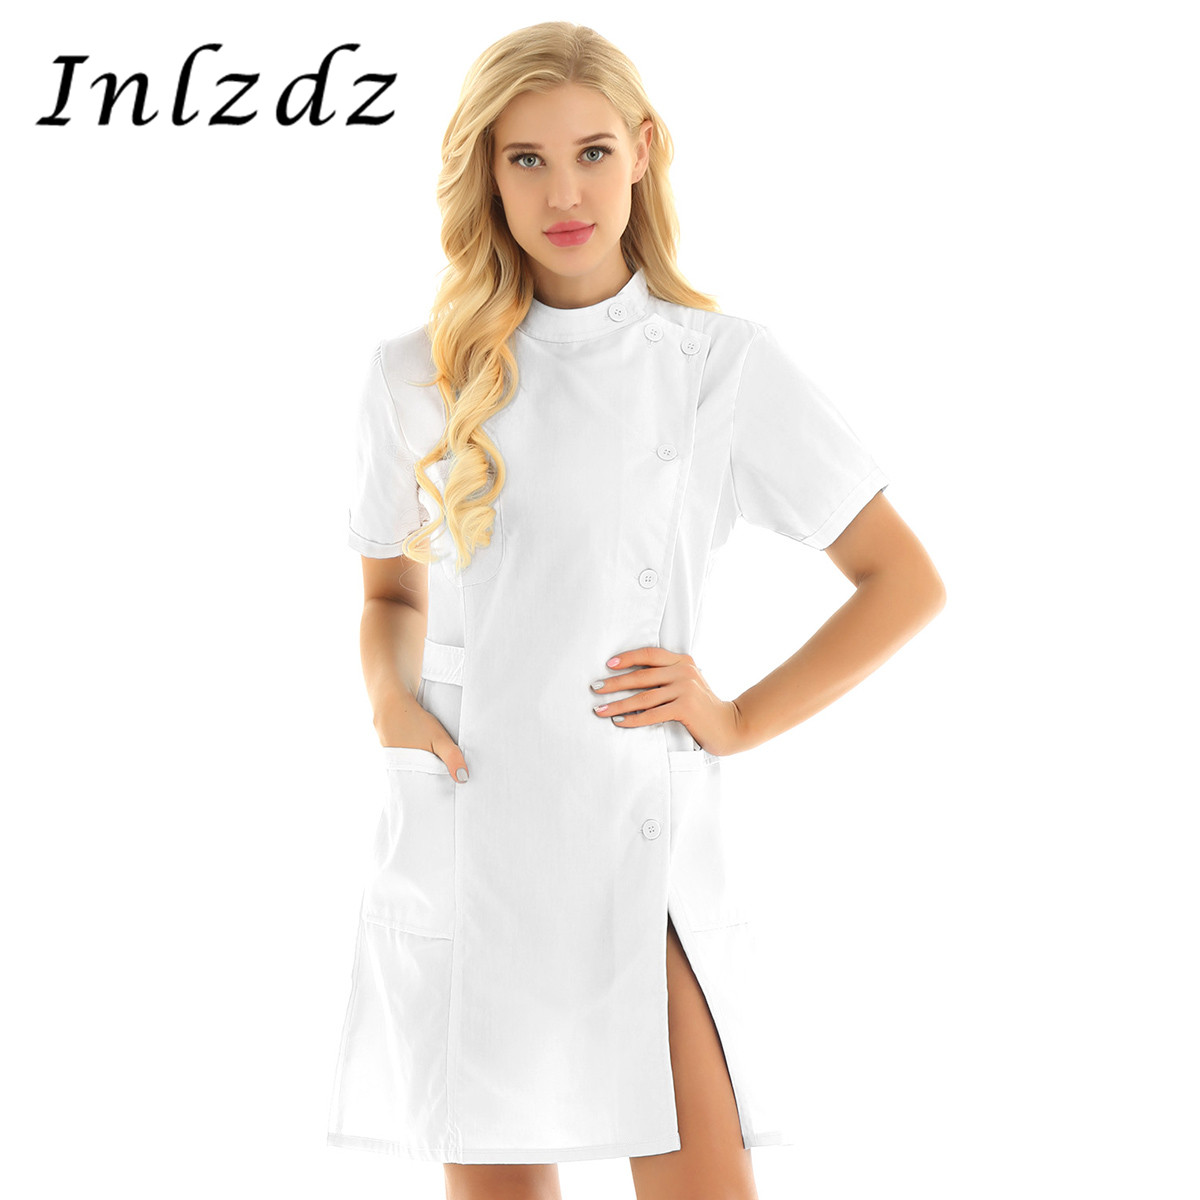 Women's Medical Uniform Mandarin Collar Slanting Button Front Hospital Nurse Doctors Scrub Lab Coat Clinic Work Uniform Dress